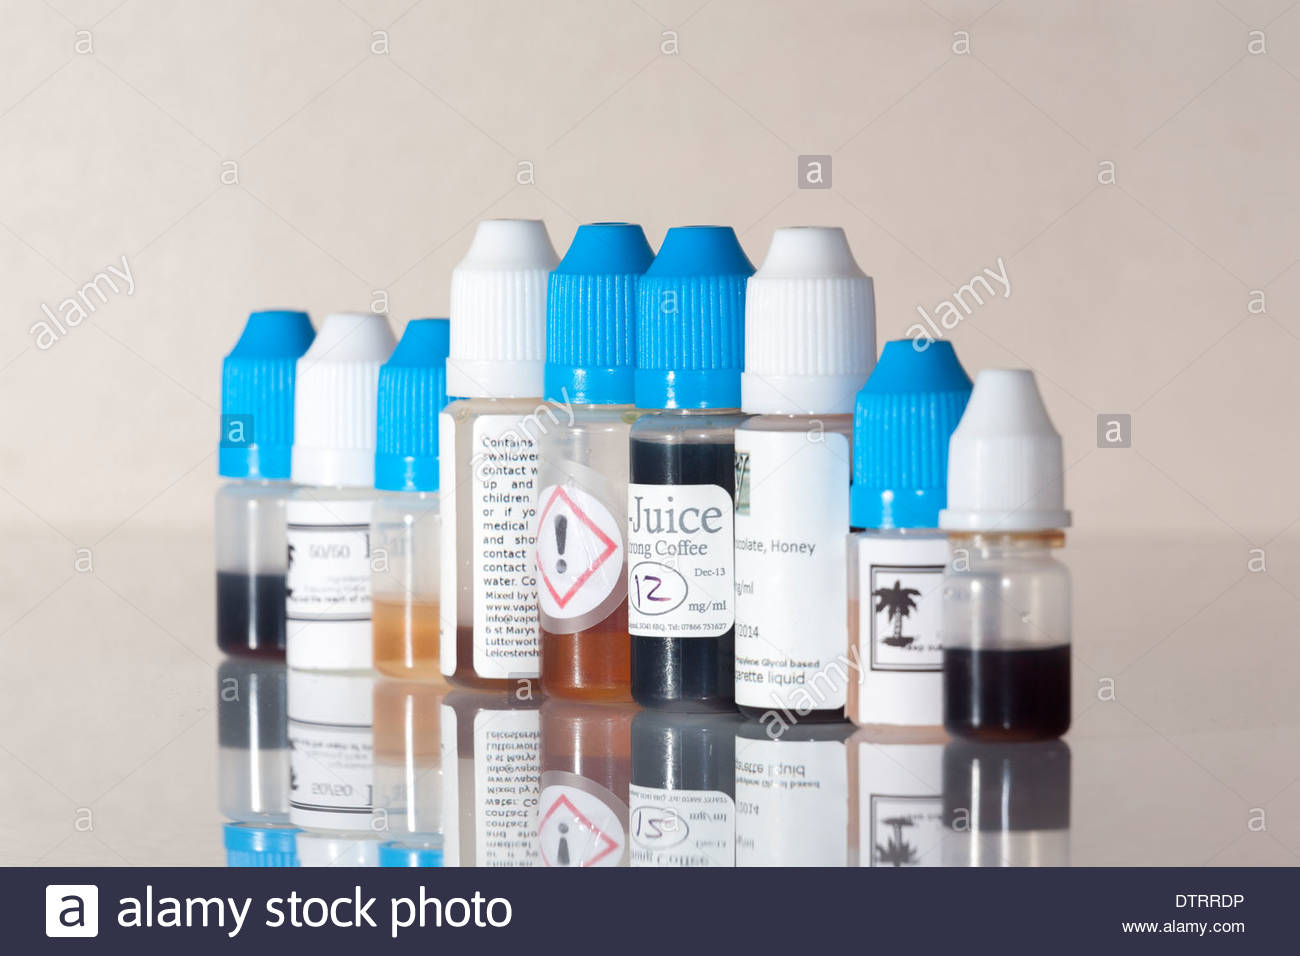 e-juice for use in electronic cigarettes - Stock Image